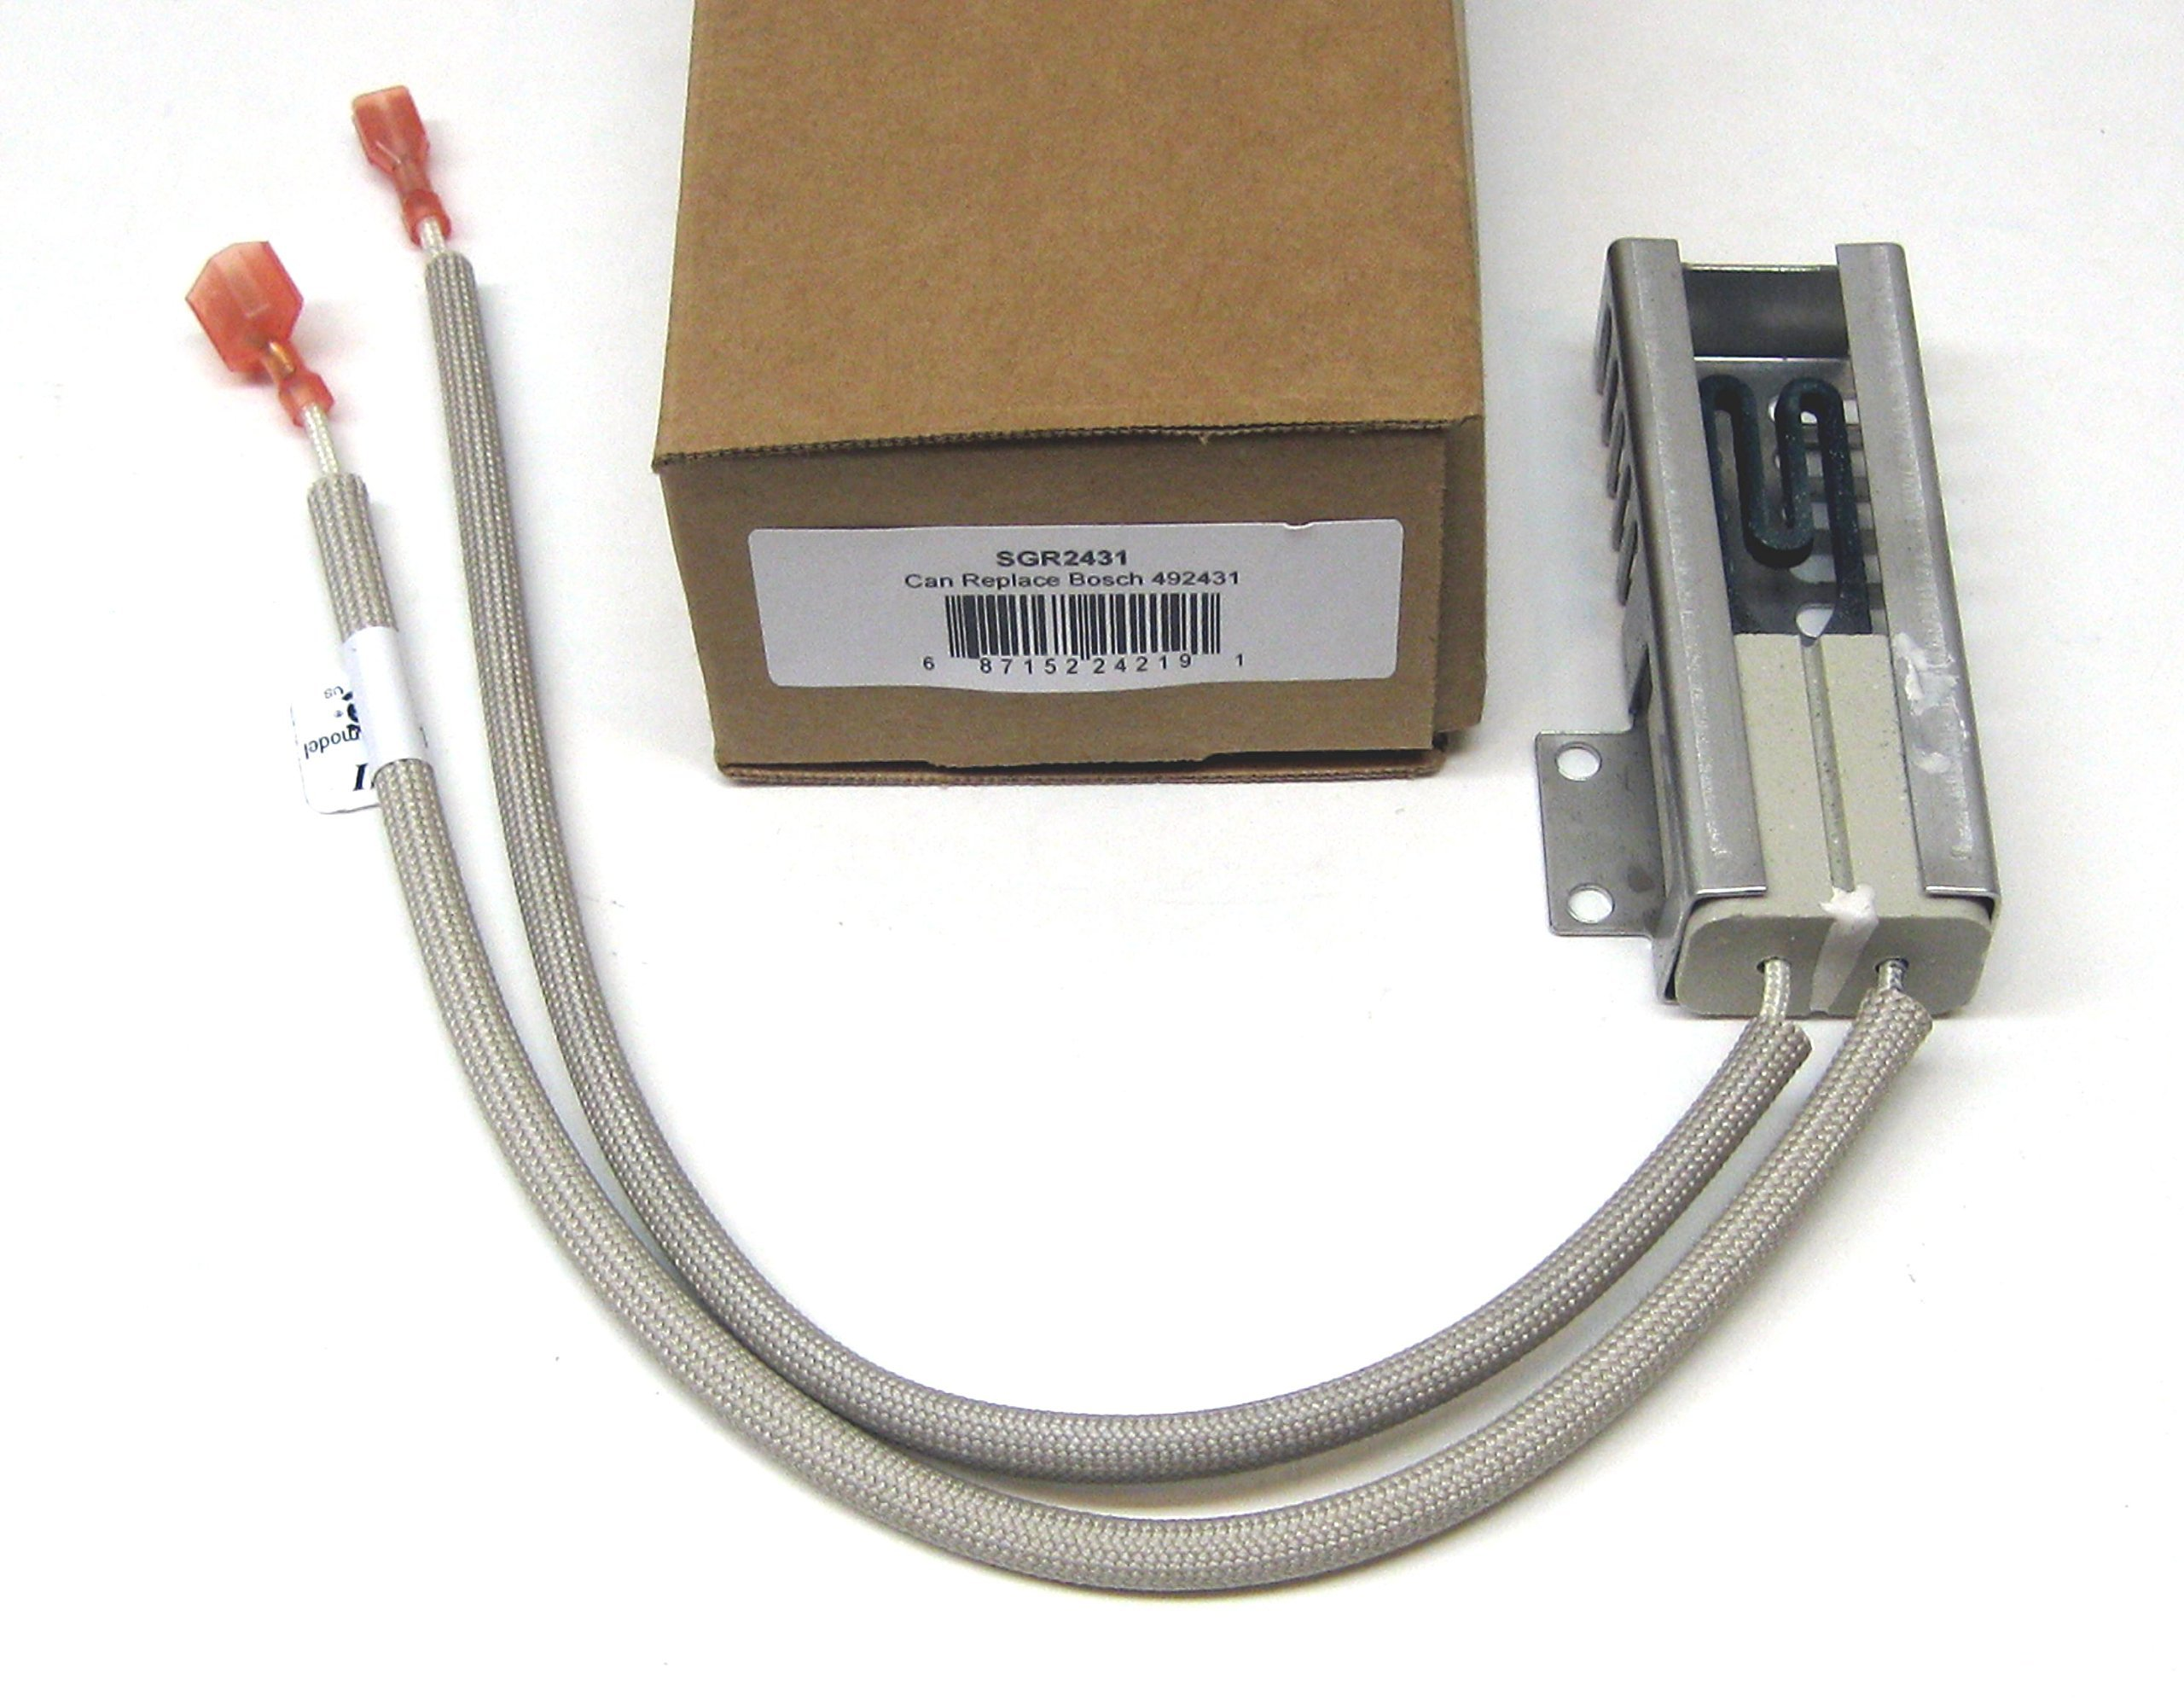 Supco SGR2431 Range Oven Igniter Replaces 00492431, AP3674290, 1107469, 20-01-500, 487383, 492431, 610098, 3472541, EA3472541, PS3472541, PS8722793